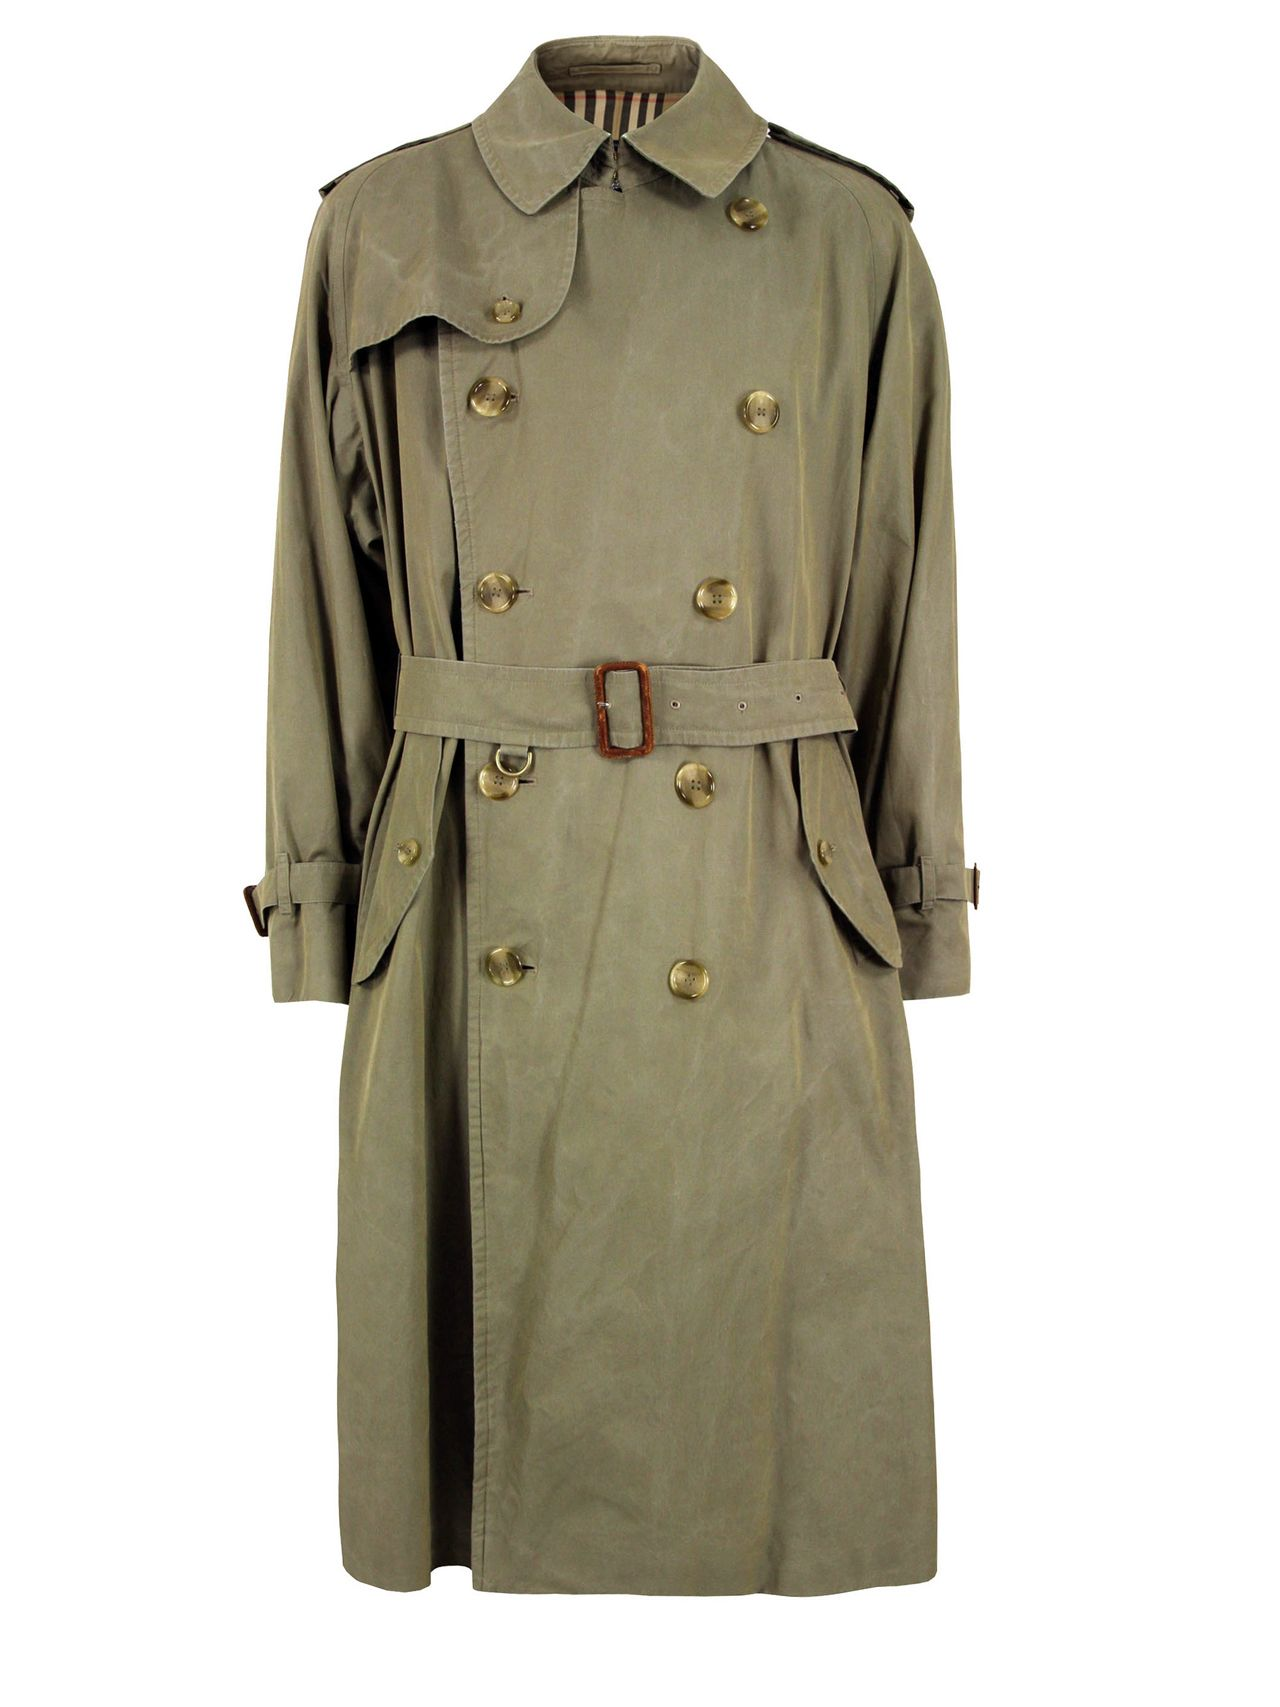 best loved 58003 8d10a The original. | How a man should dress. | Burberry outfit ...